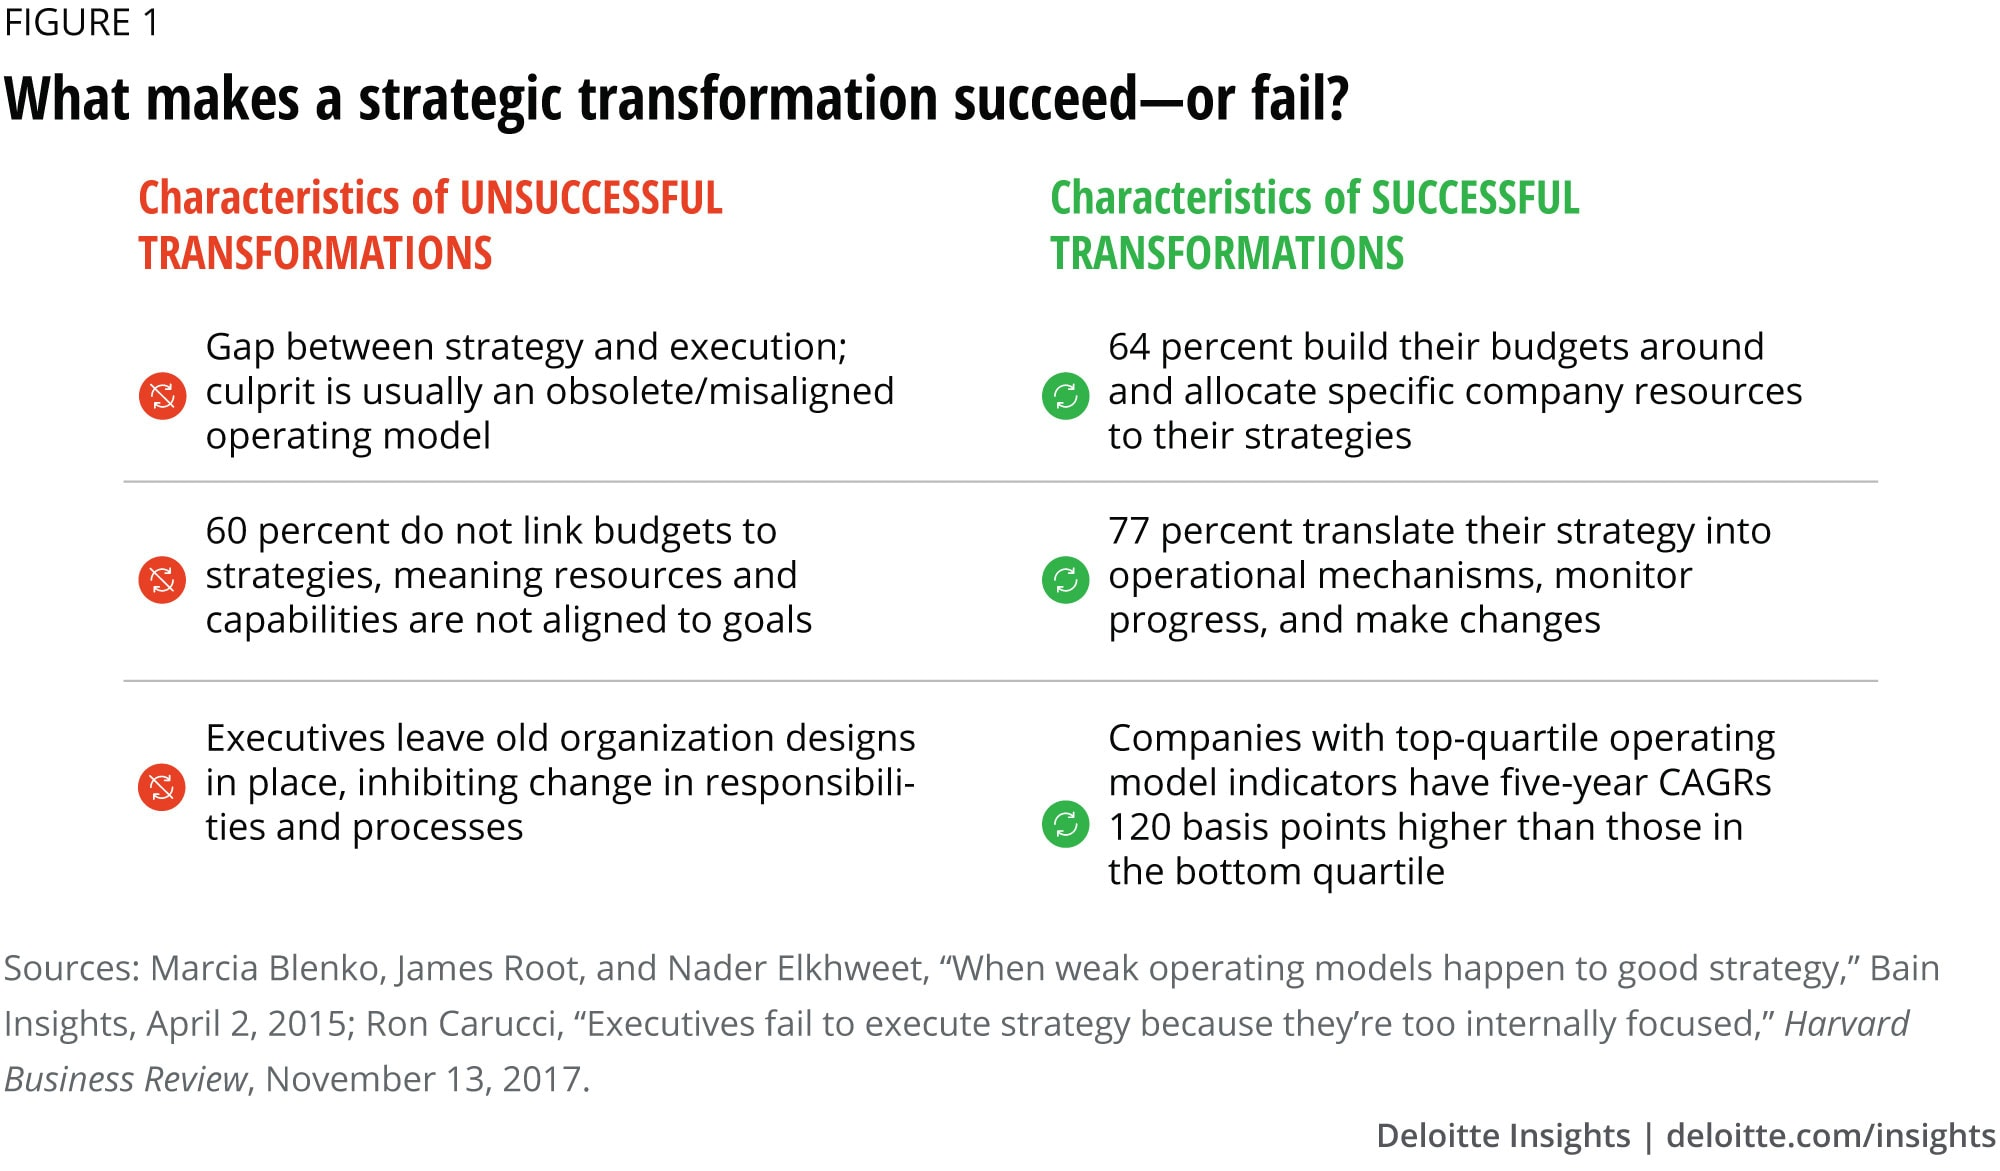 What makes a strategic transformation succeed—or fail?